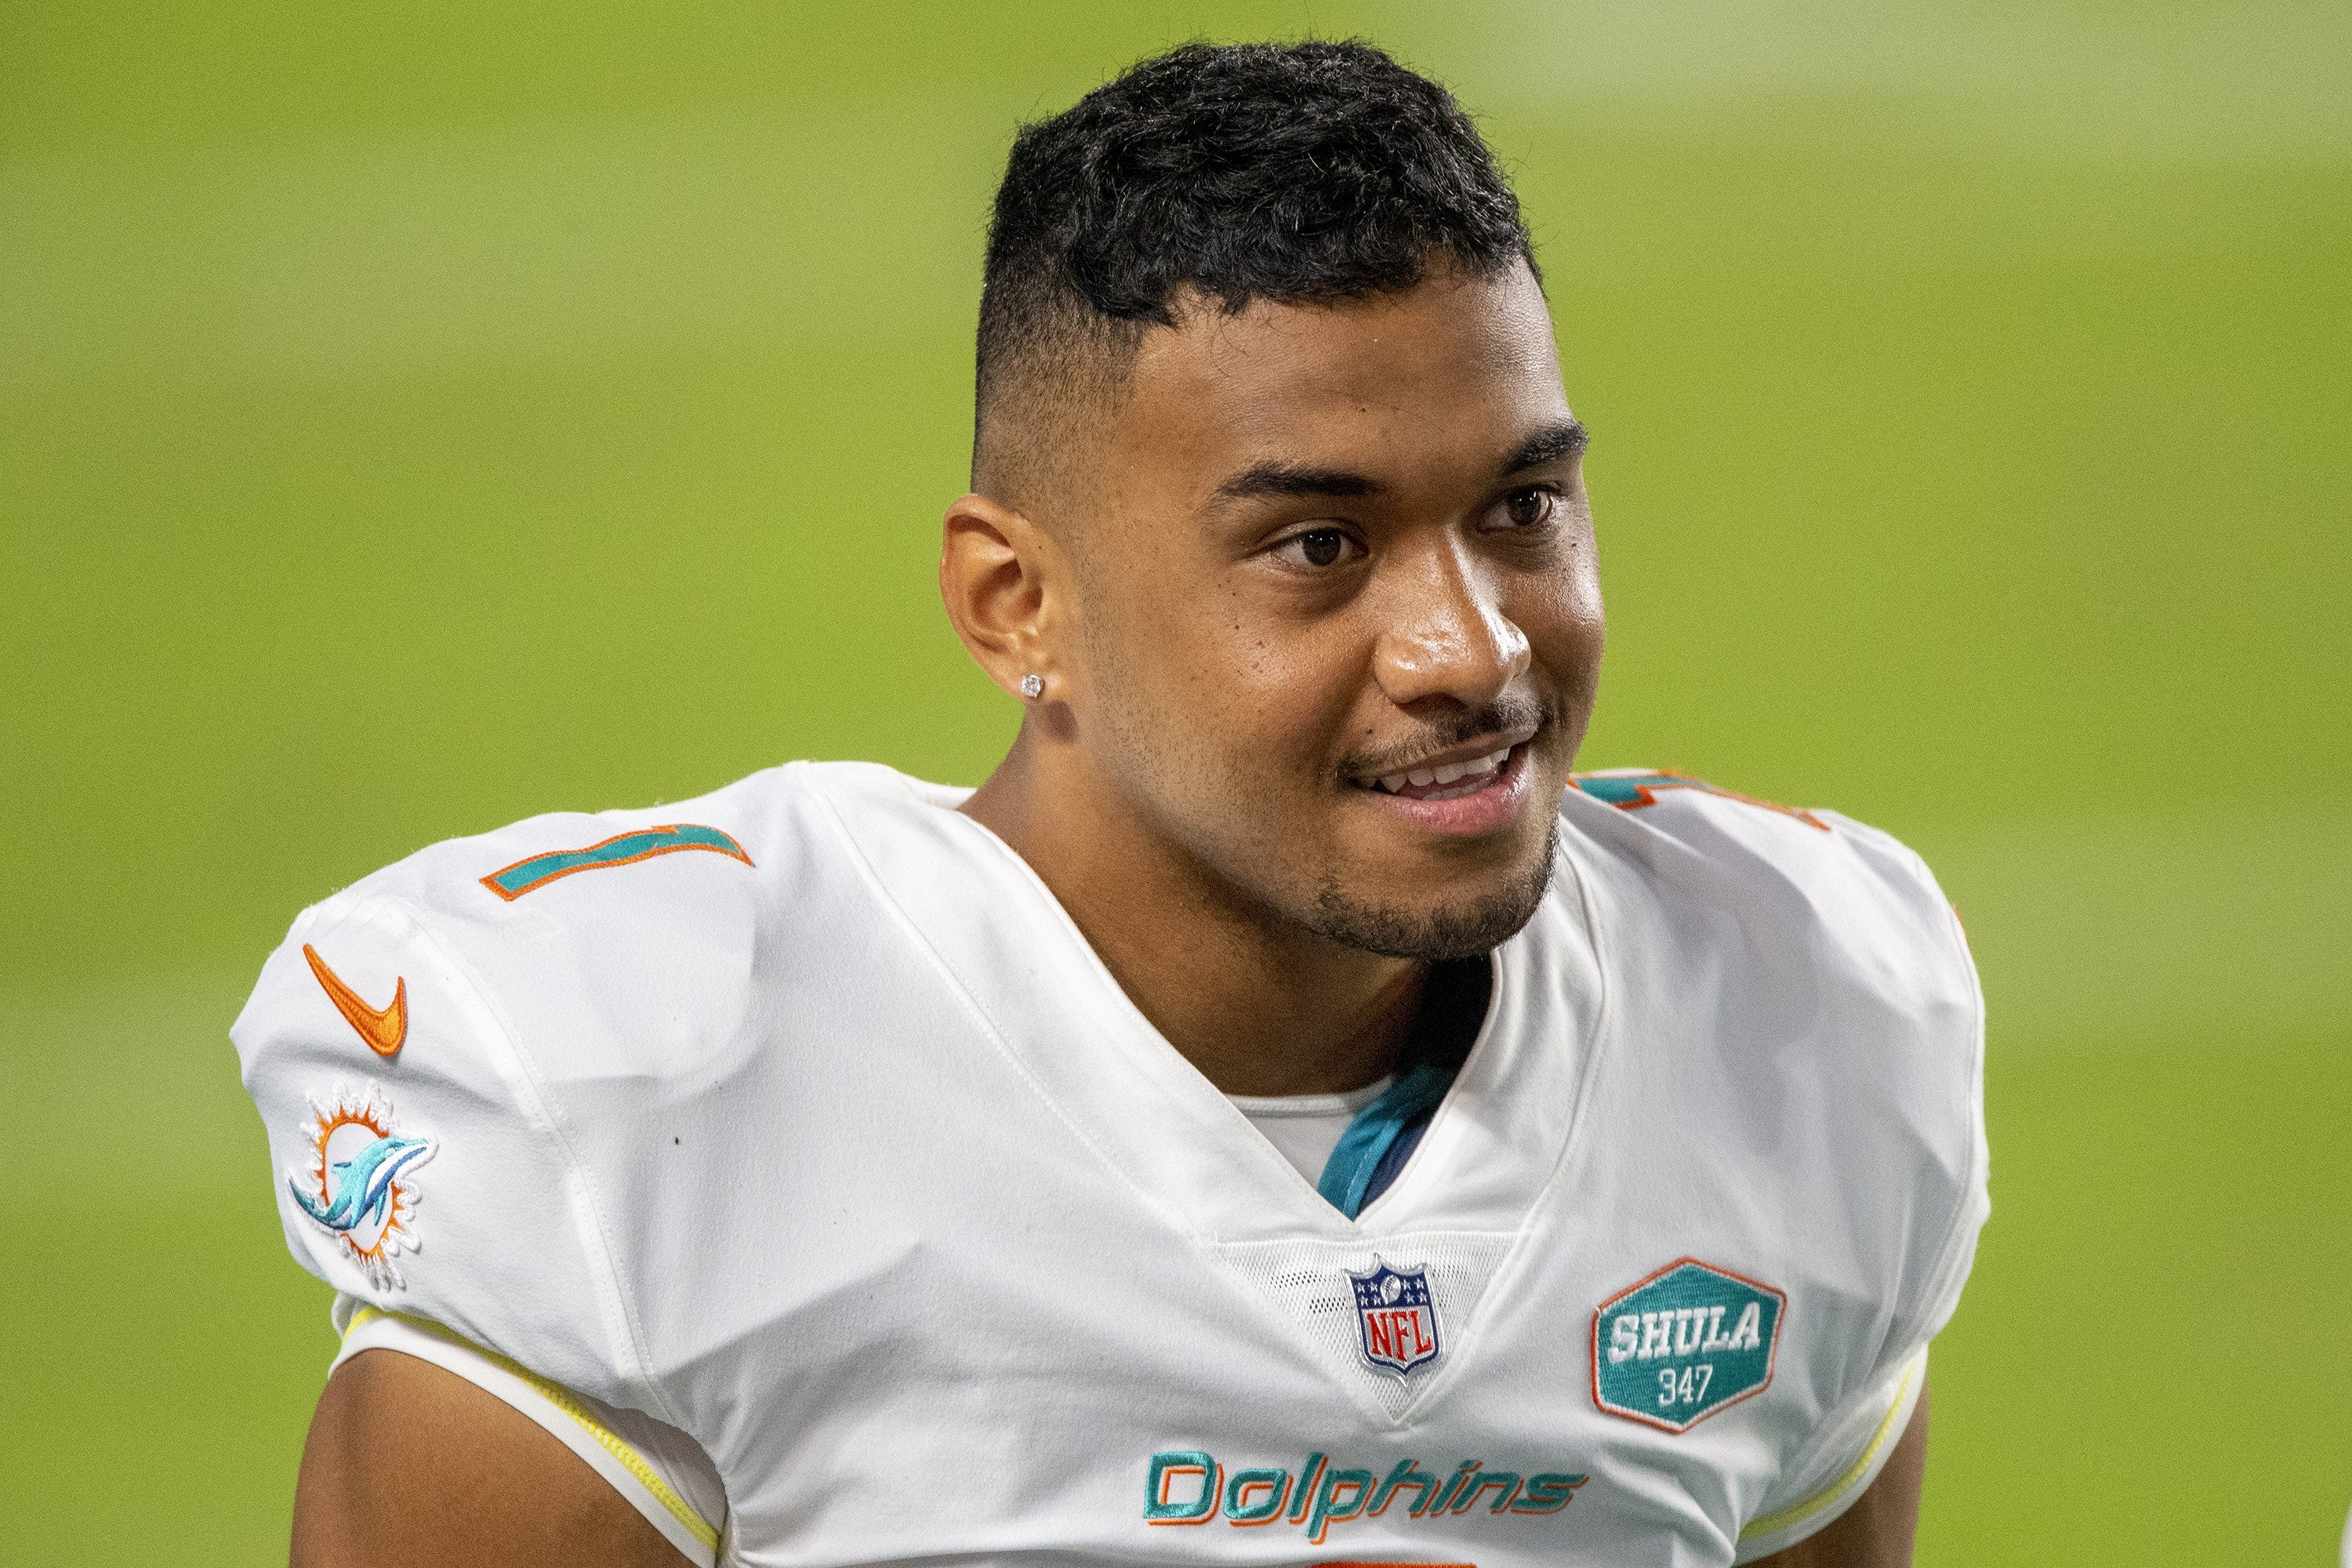 Tua Tagovailoa makes Dolphins start. He's prepared for this moment.